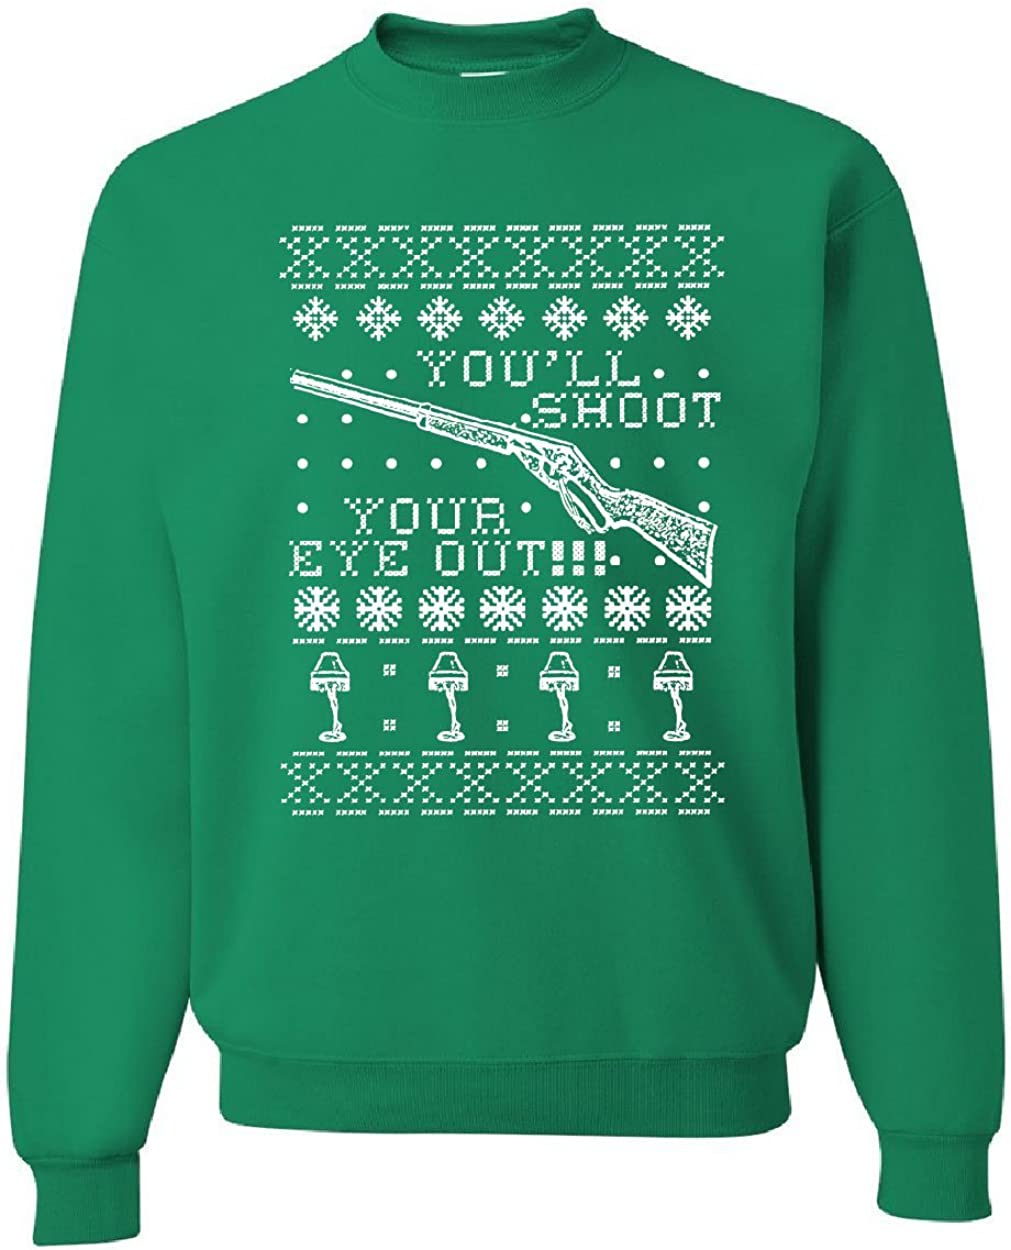 Youll Shoot Your Eye Out Sweatshirt Funny Christmas Ugly Sweater